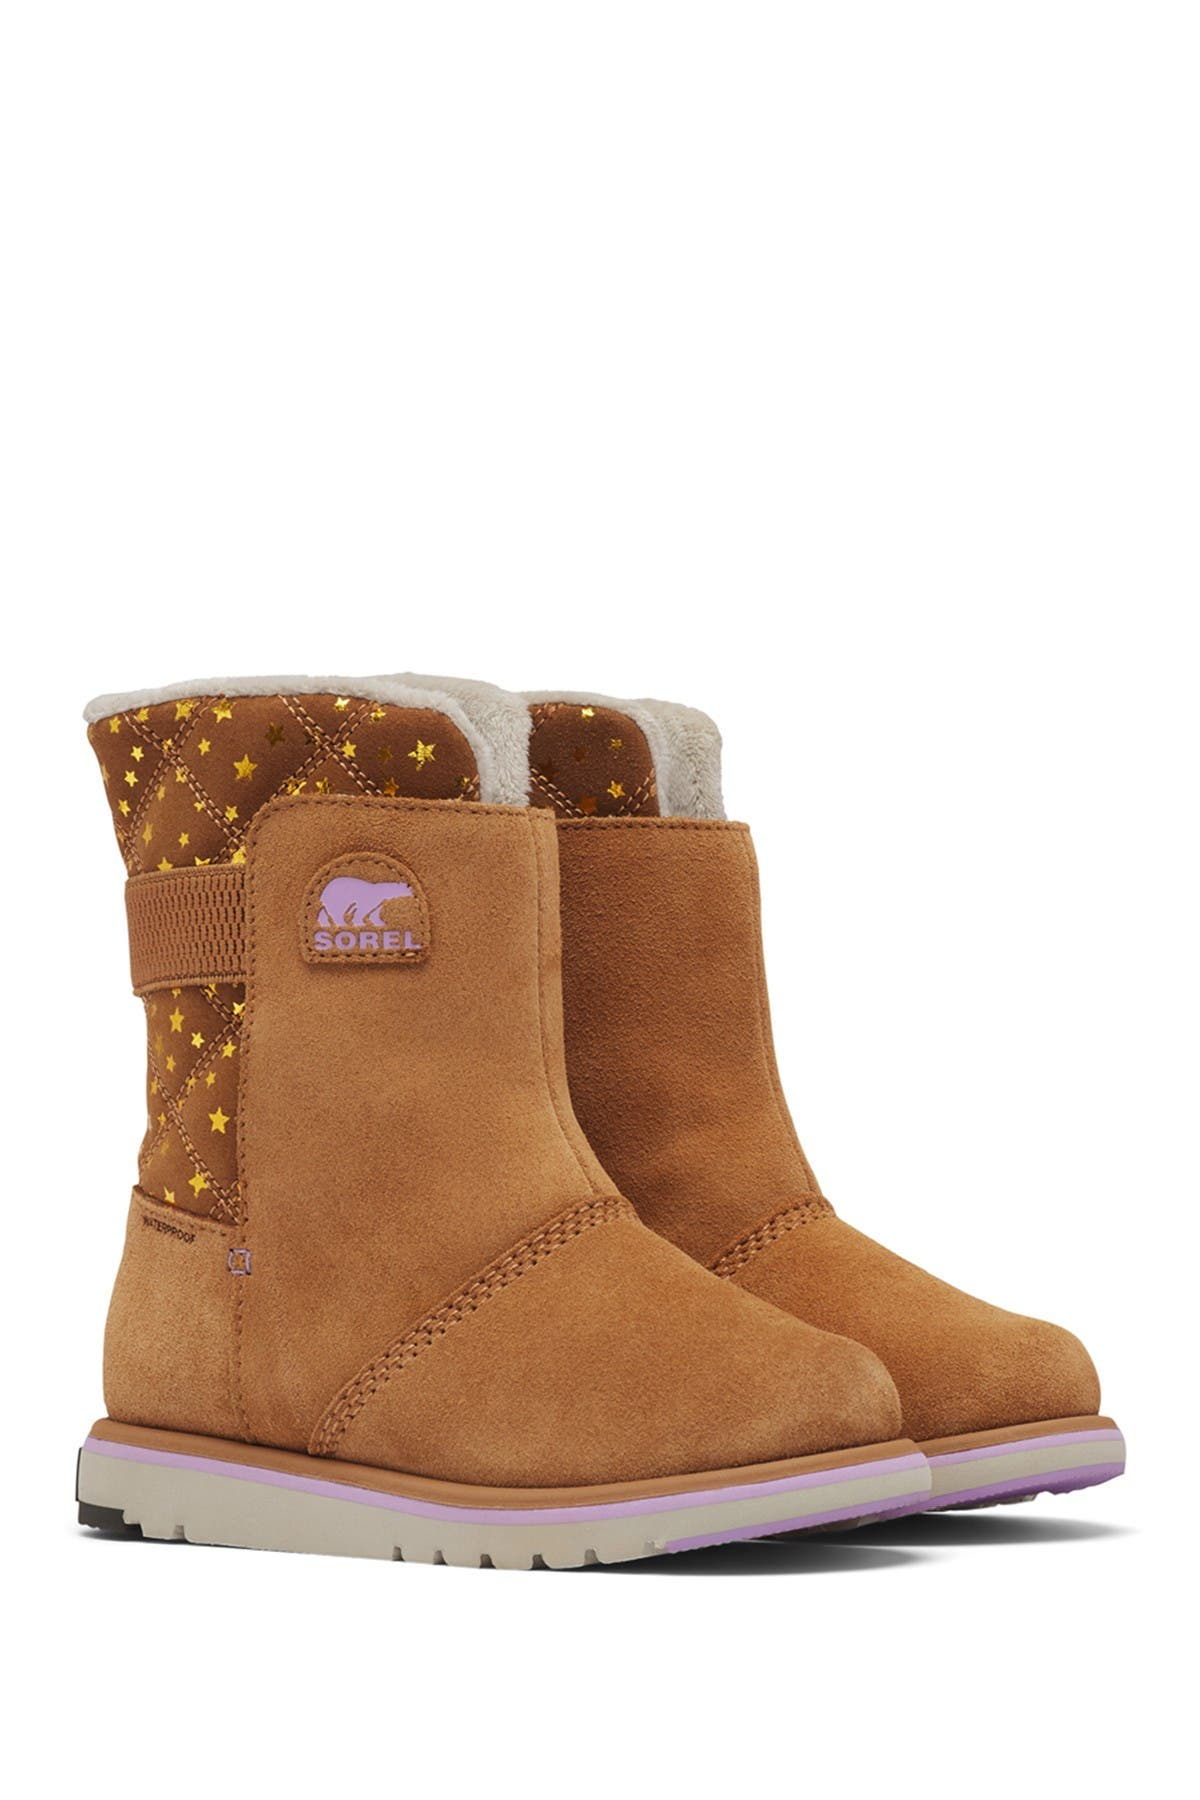 Image of Sorel Rylee Boot